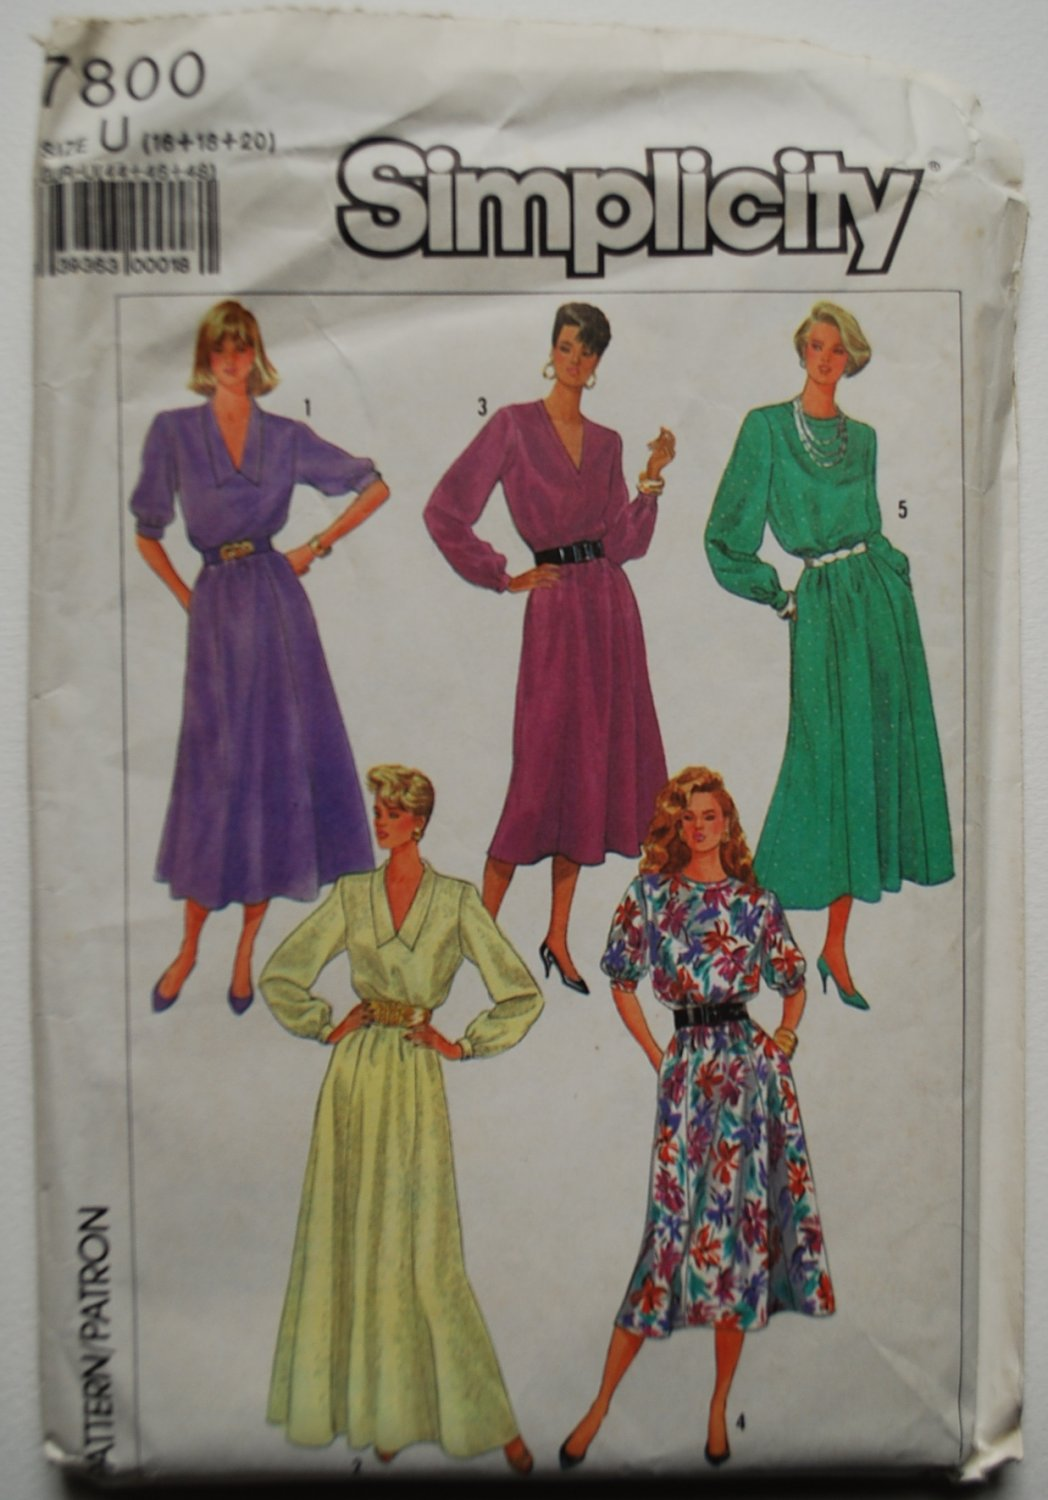 Simplicity 7800 vintage 1986 dress pattern, various styles, sizes 16-20